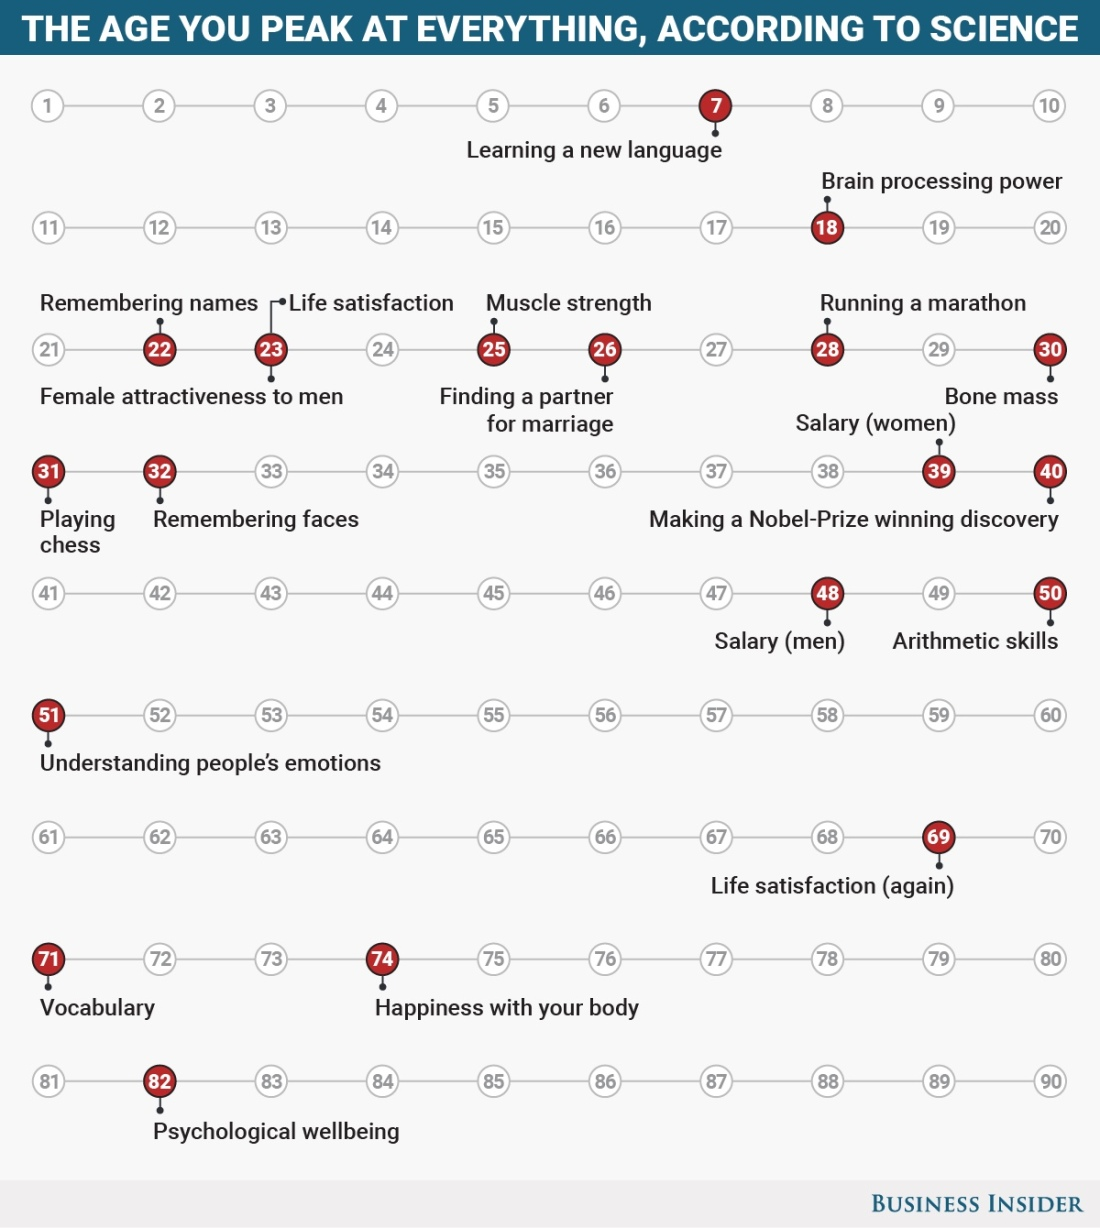 SNJ: T-1885: Here are the ages you peak at everything throughout http://www.businessinsider.in/Here-are-the-ages-you-peak-at-everything-throughout-life/articleshow/57674524.cms #womenintech #womenindigital #thoughtleaders #tedxspeaker #technology #tech #success #strategy #startuplife #startupbusiness #startup #smitanairjain #mentor #leadership #itmanagement #itleaders #innovation #informationtechnology #Influencer #hightech #fintechinfluencer #fintech #entrepreneurship #entrepreneurs #economy #economics #development #copypaste #businessintelligence #believe Take A Minute To Follow Me On Social Media Facebook: @SmitaNairJainPage   Twitter: @SmitaNairJain Instagram: @smita.nair.jain          LinkedIn: @smitanairjain